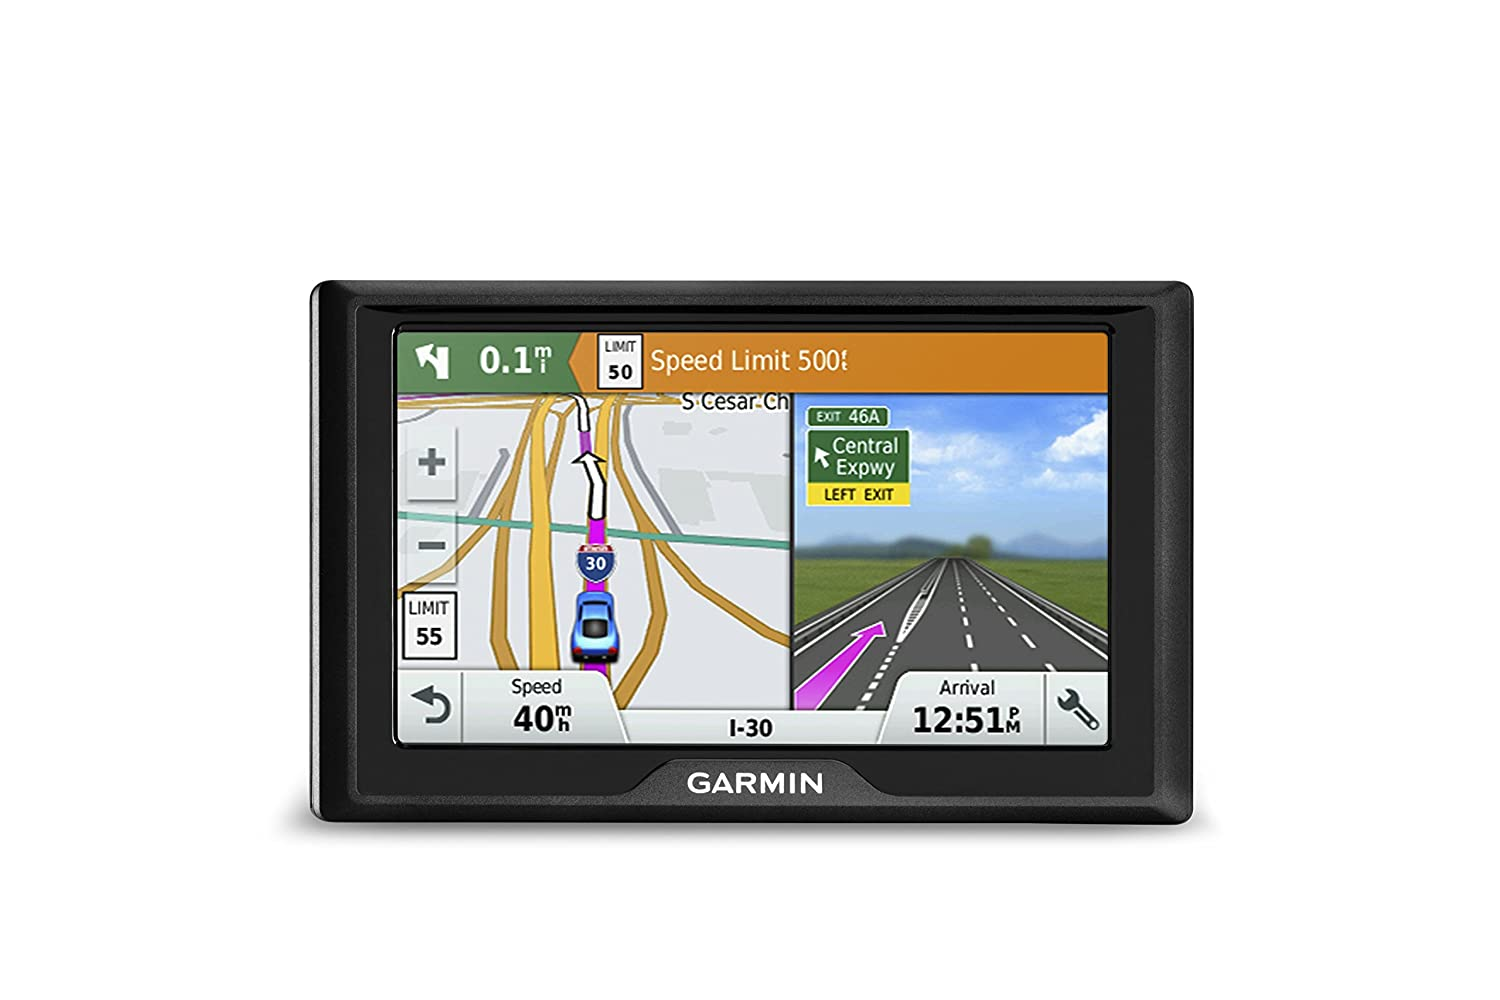 Amazon.com: Garmin Drive 50 USA LM GPS Navigator System with Lifetime Maps,  Spoken Turn-By-Turn Directions, Direct Access, Driver Alerts, and  Foursquare ...